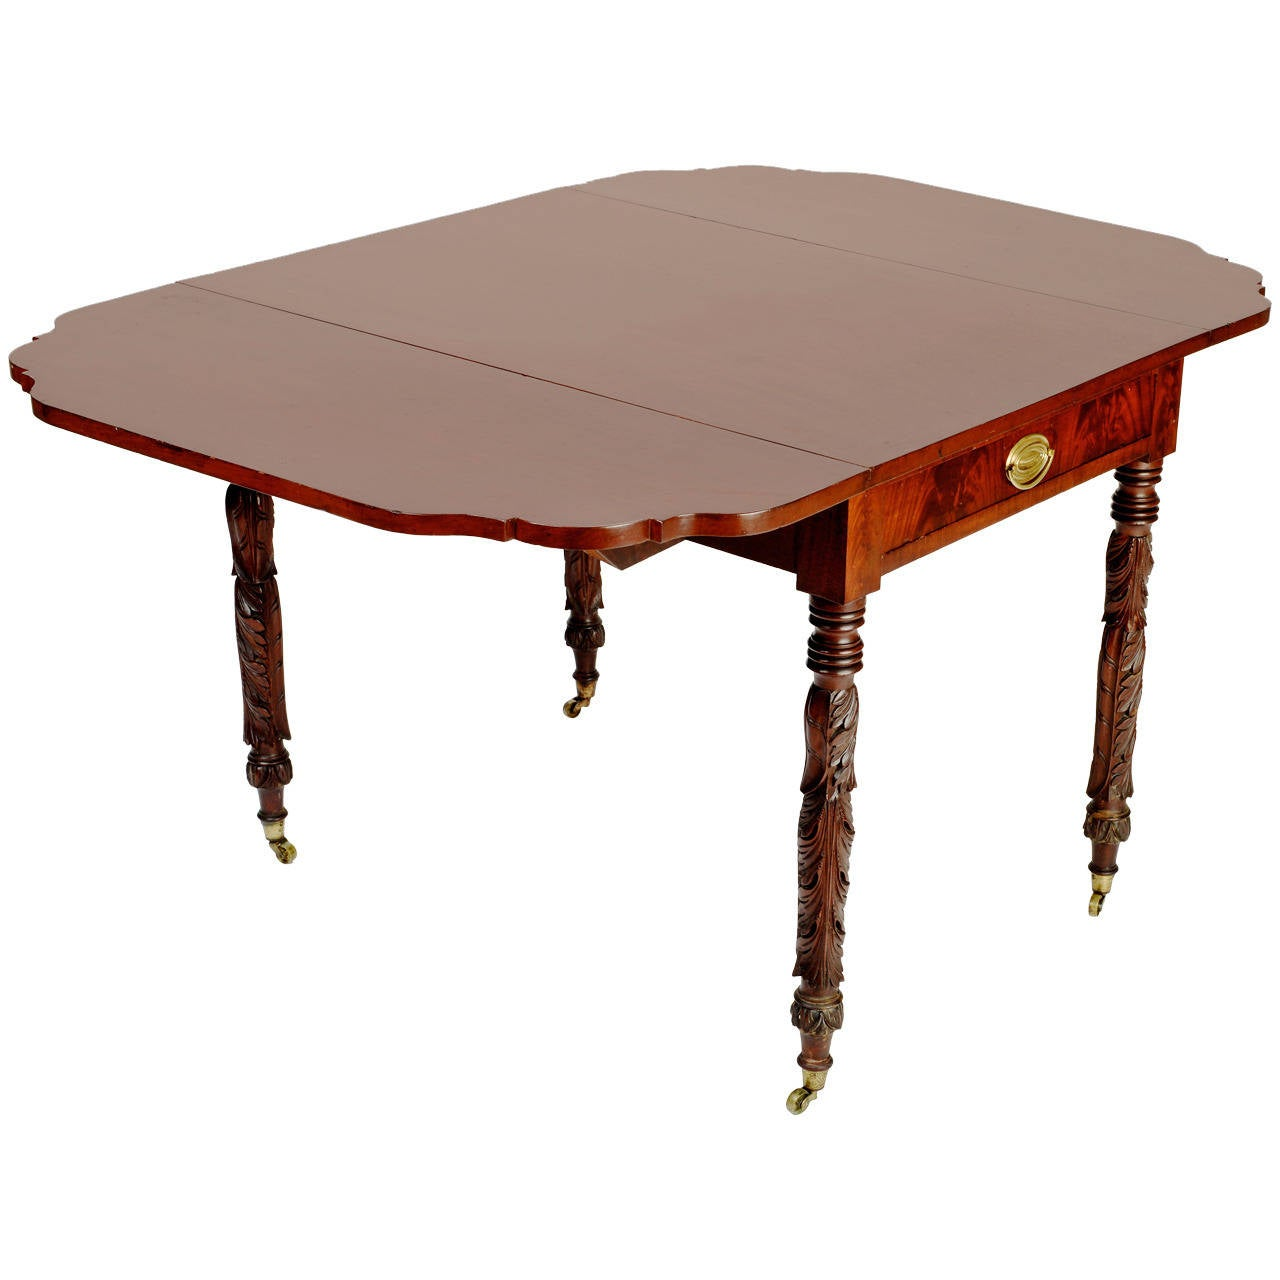 New york mahogany drop leaf table circa 1875 for sale at for Table new york